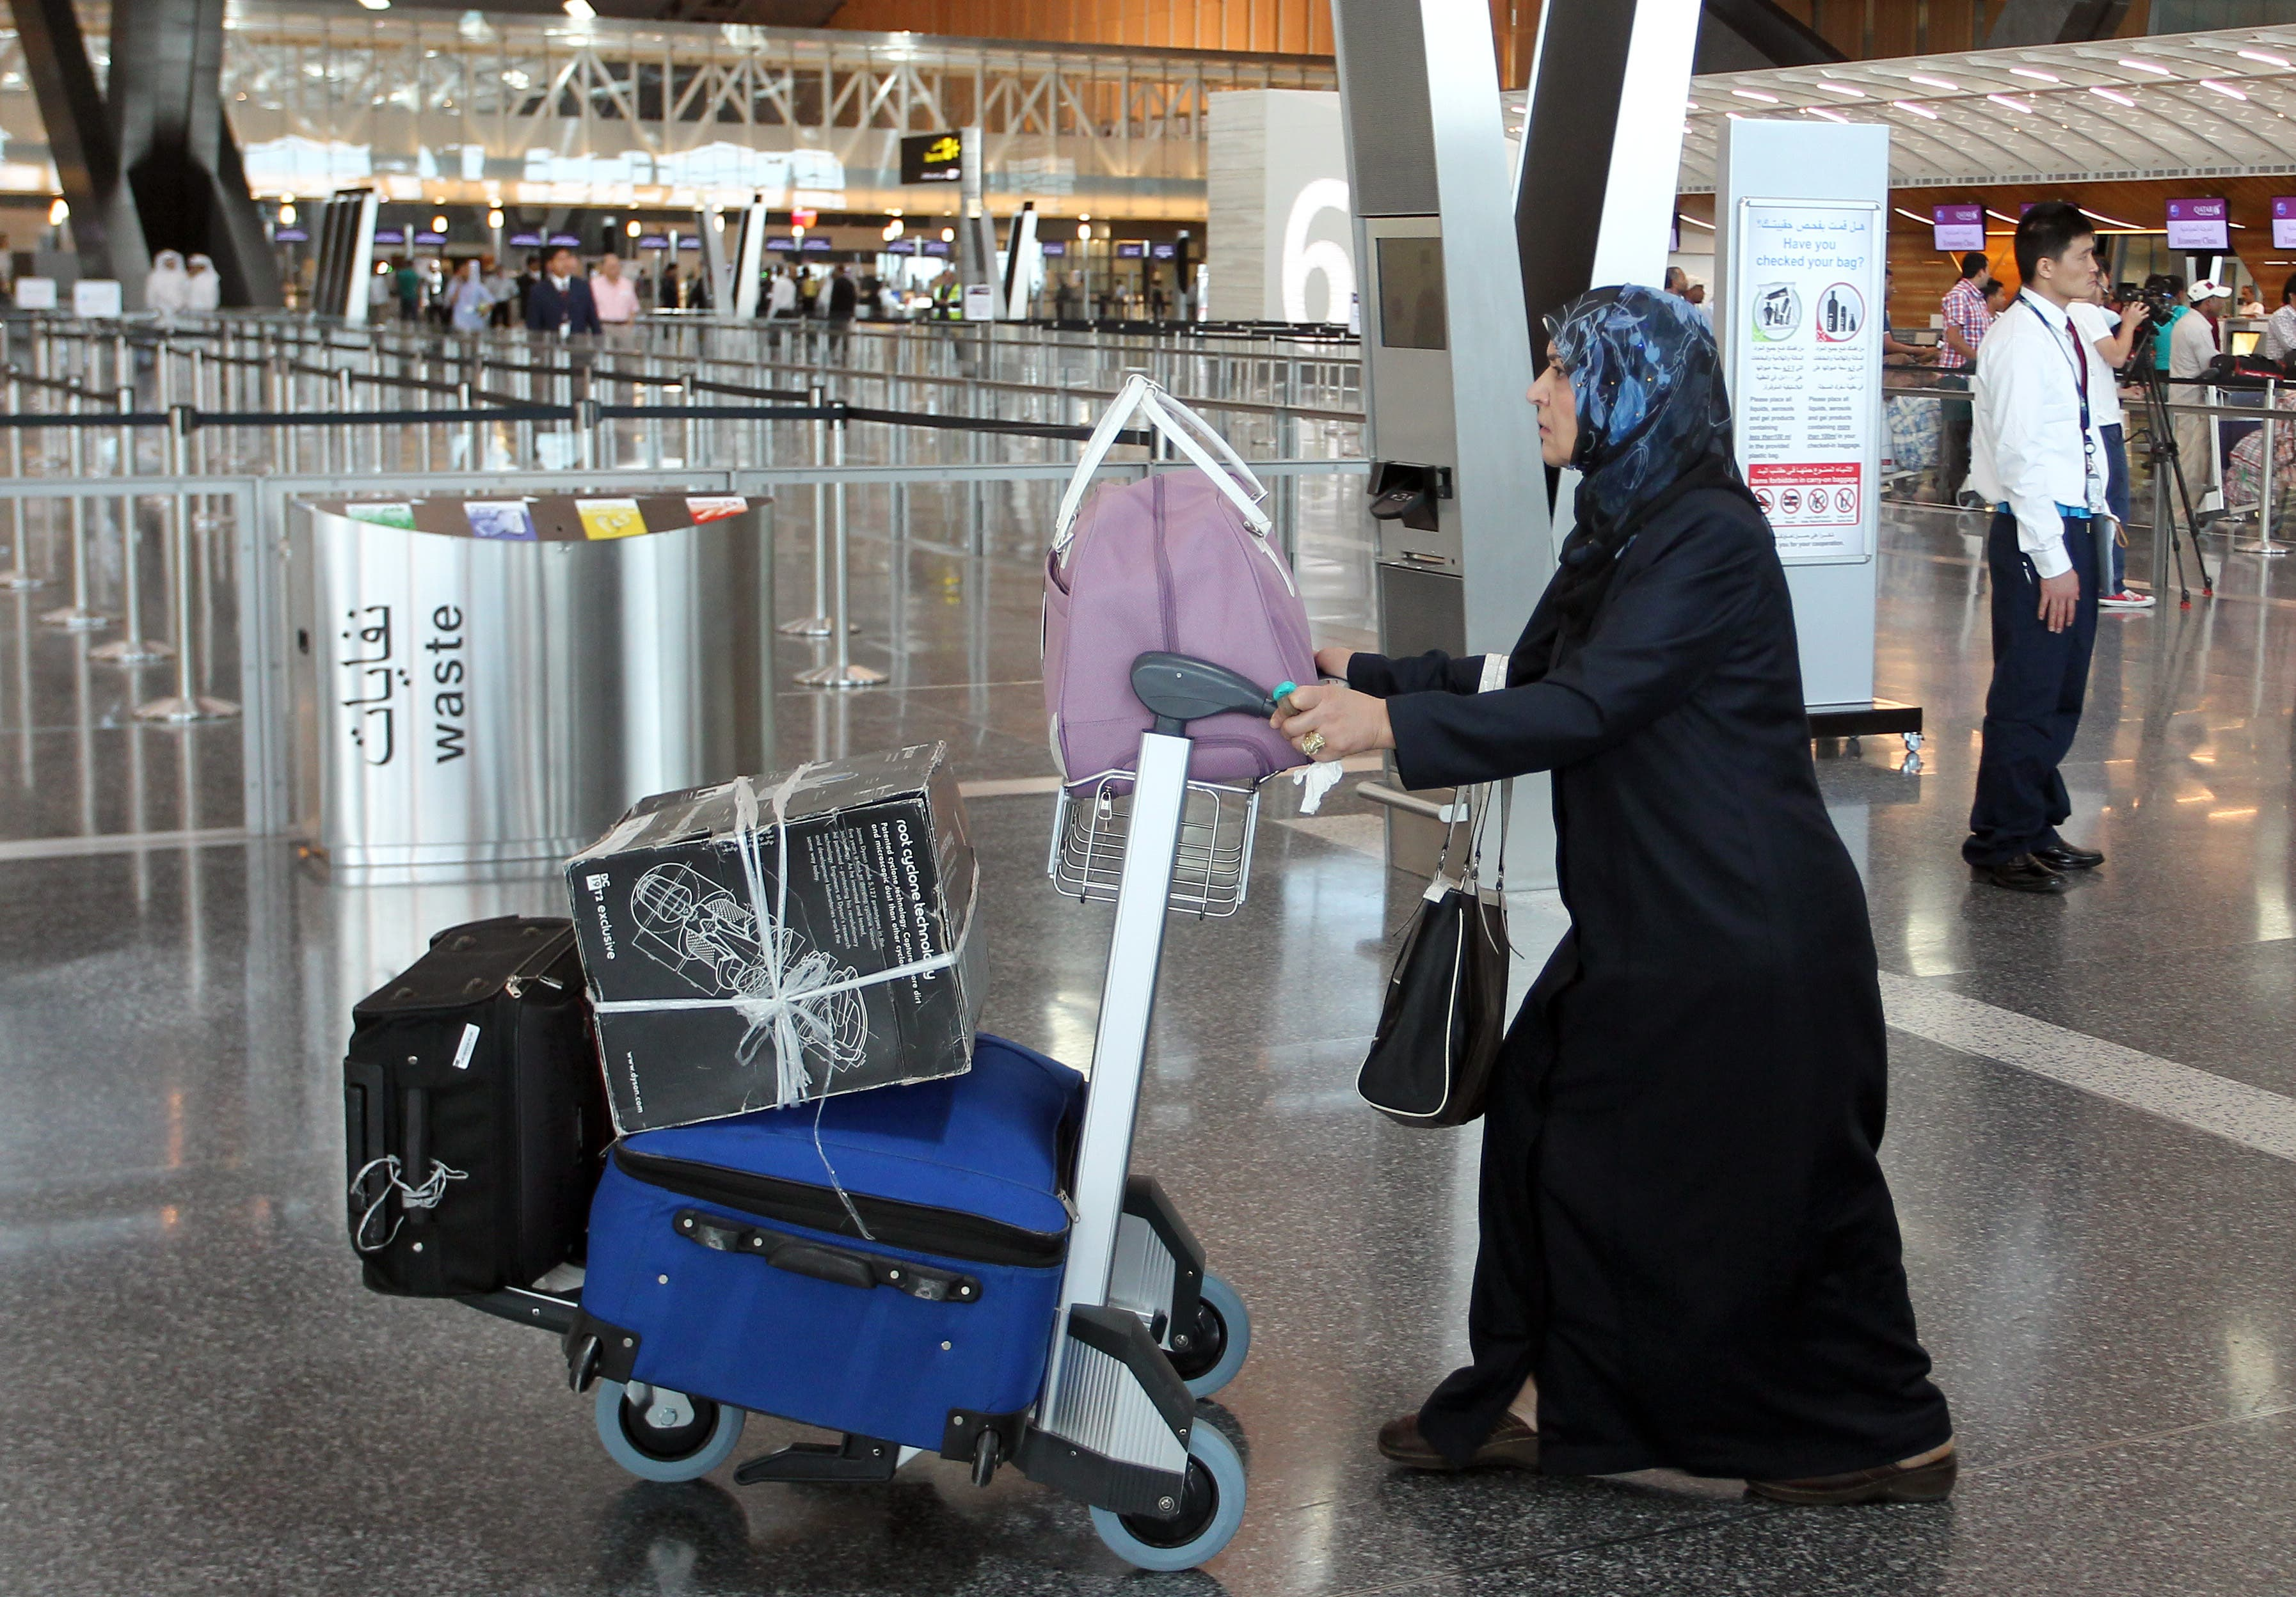 Qatar expats say leave cancelled, travel restricted